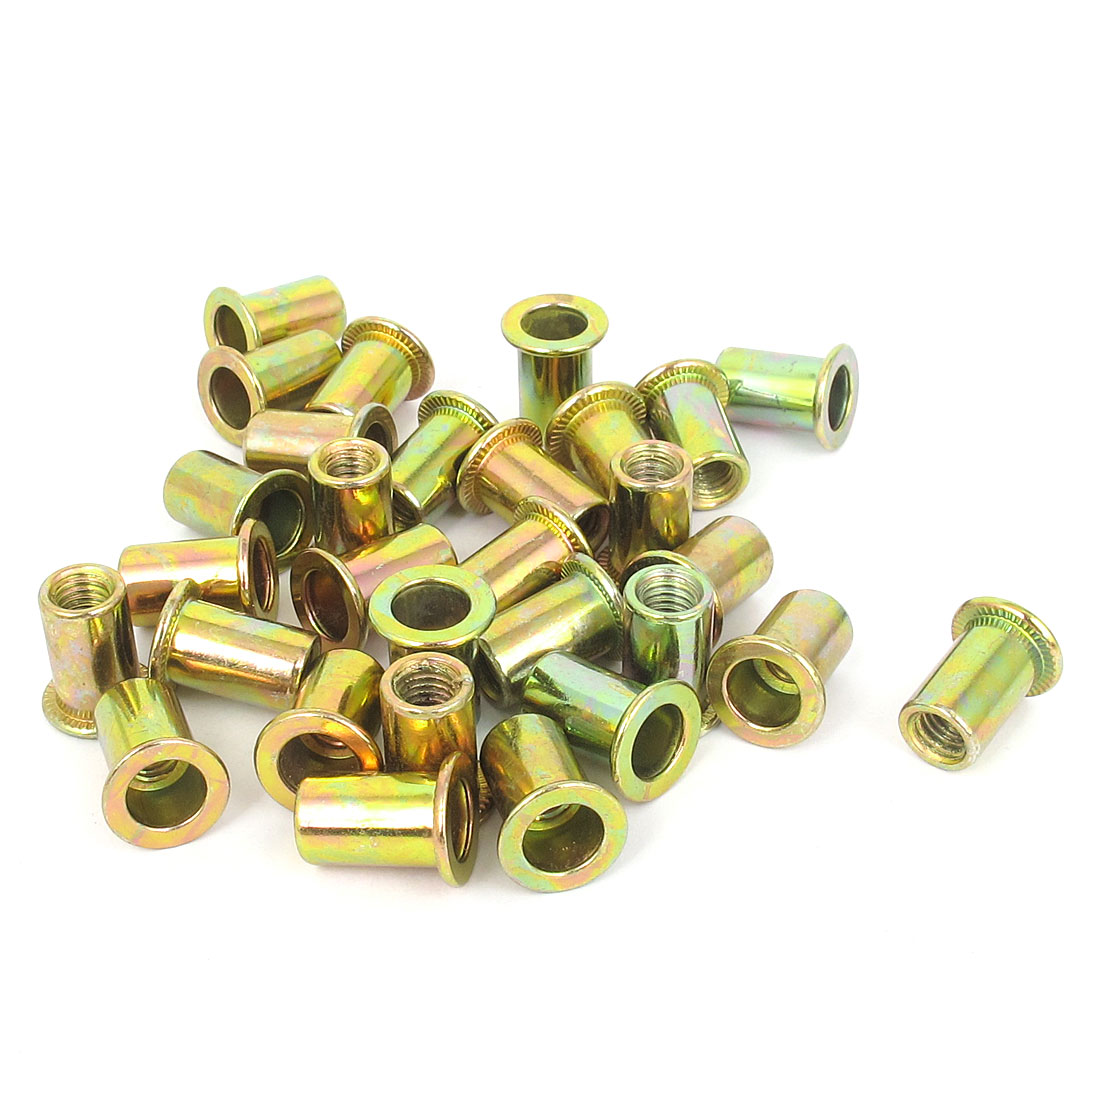 30 Pcs M6x15mm Countersunk Head Threaded Inserts Blind Rivet Nuts Nutserts